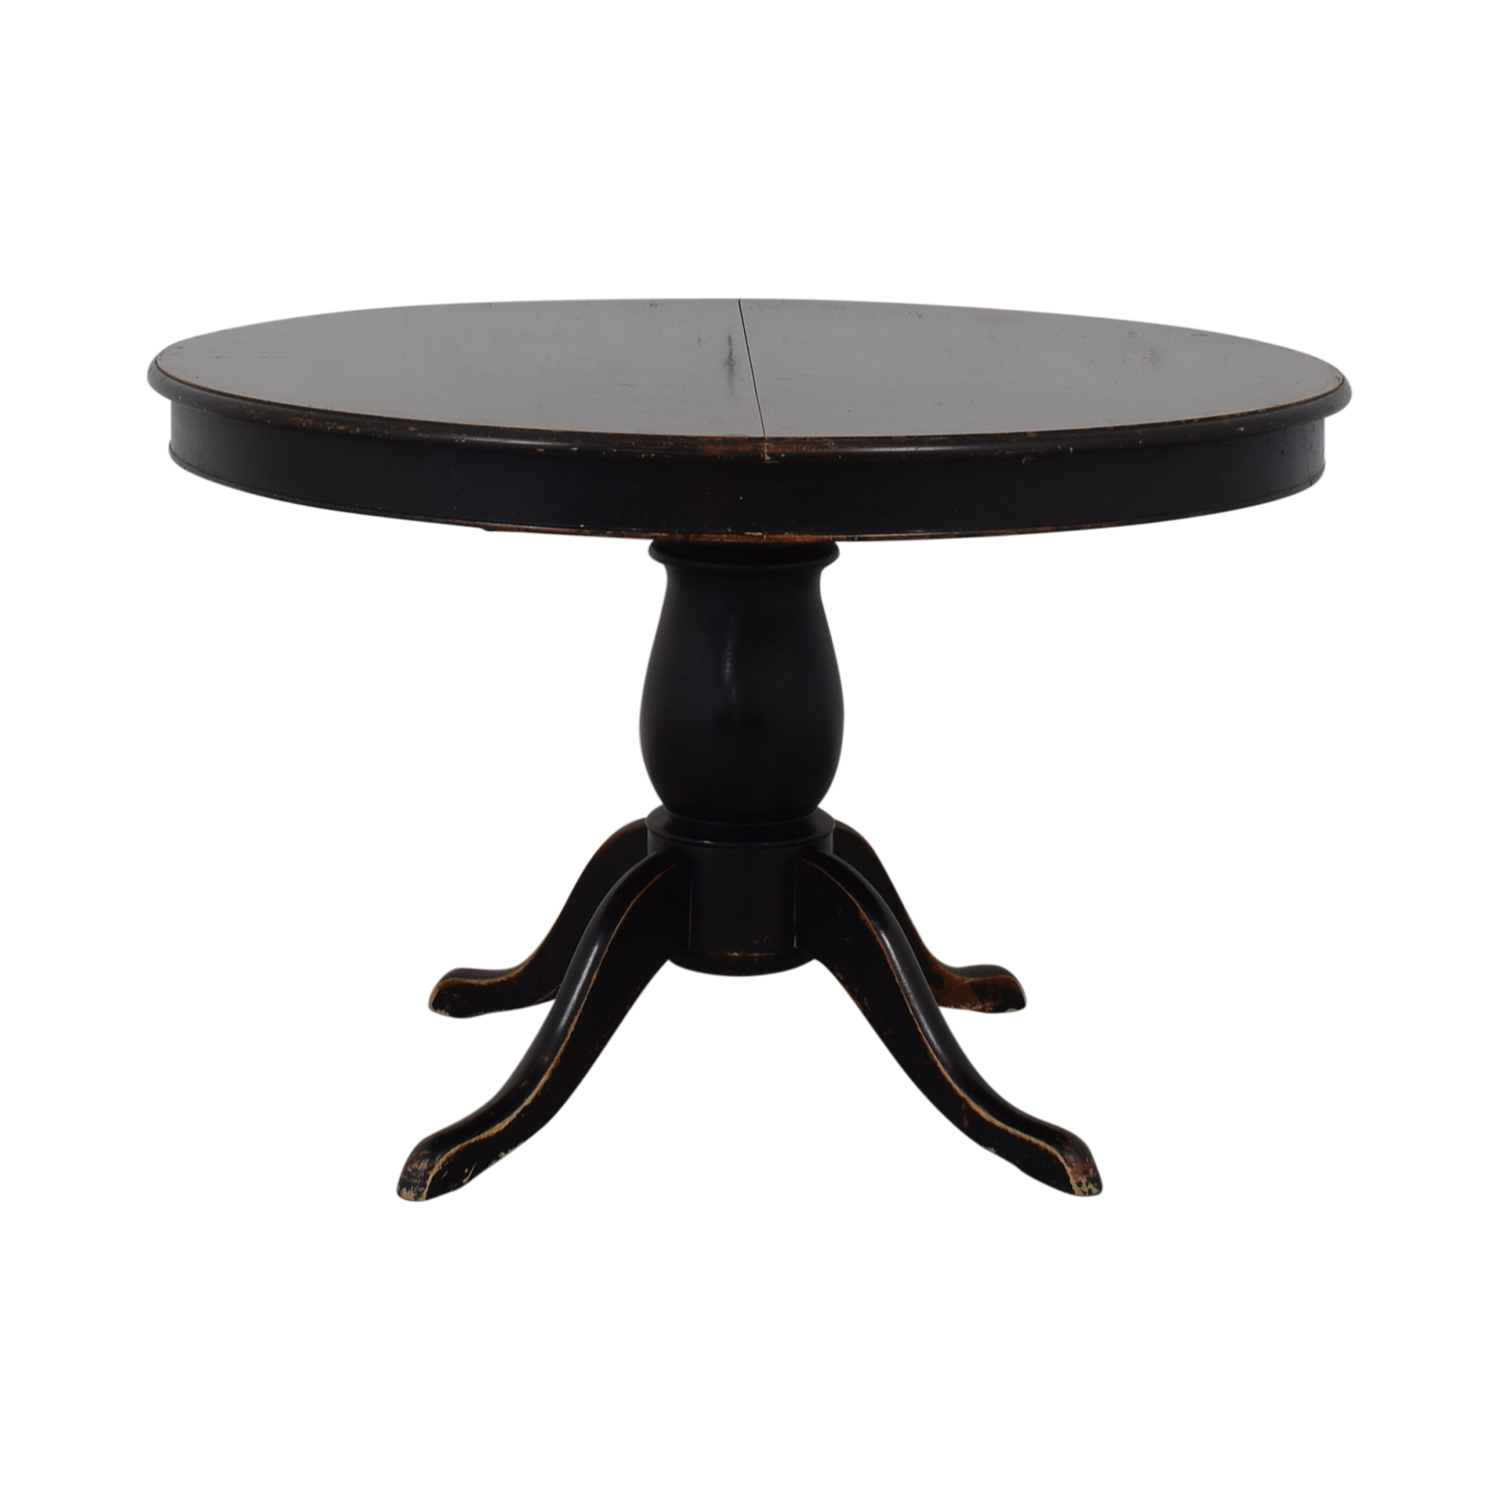 Crate & Barrel Crate & Barrel Avalon Round Extendable Dining Table